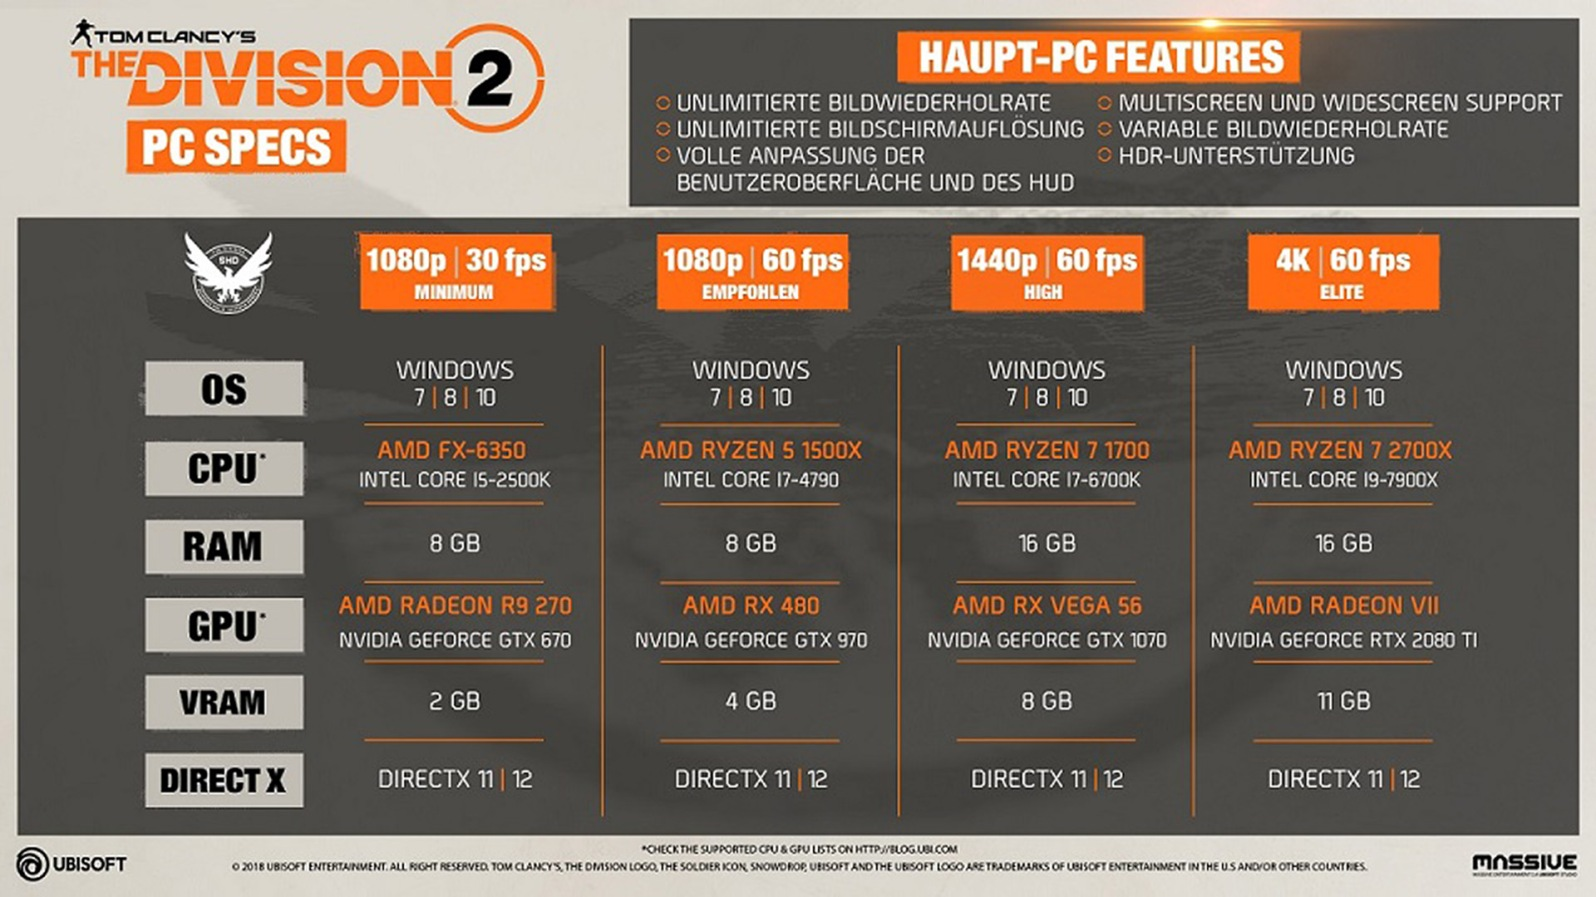 Quelle: blog.ubi.com - Tom Clancy's The Division 2 - PC-Spezifikationen